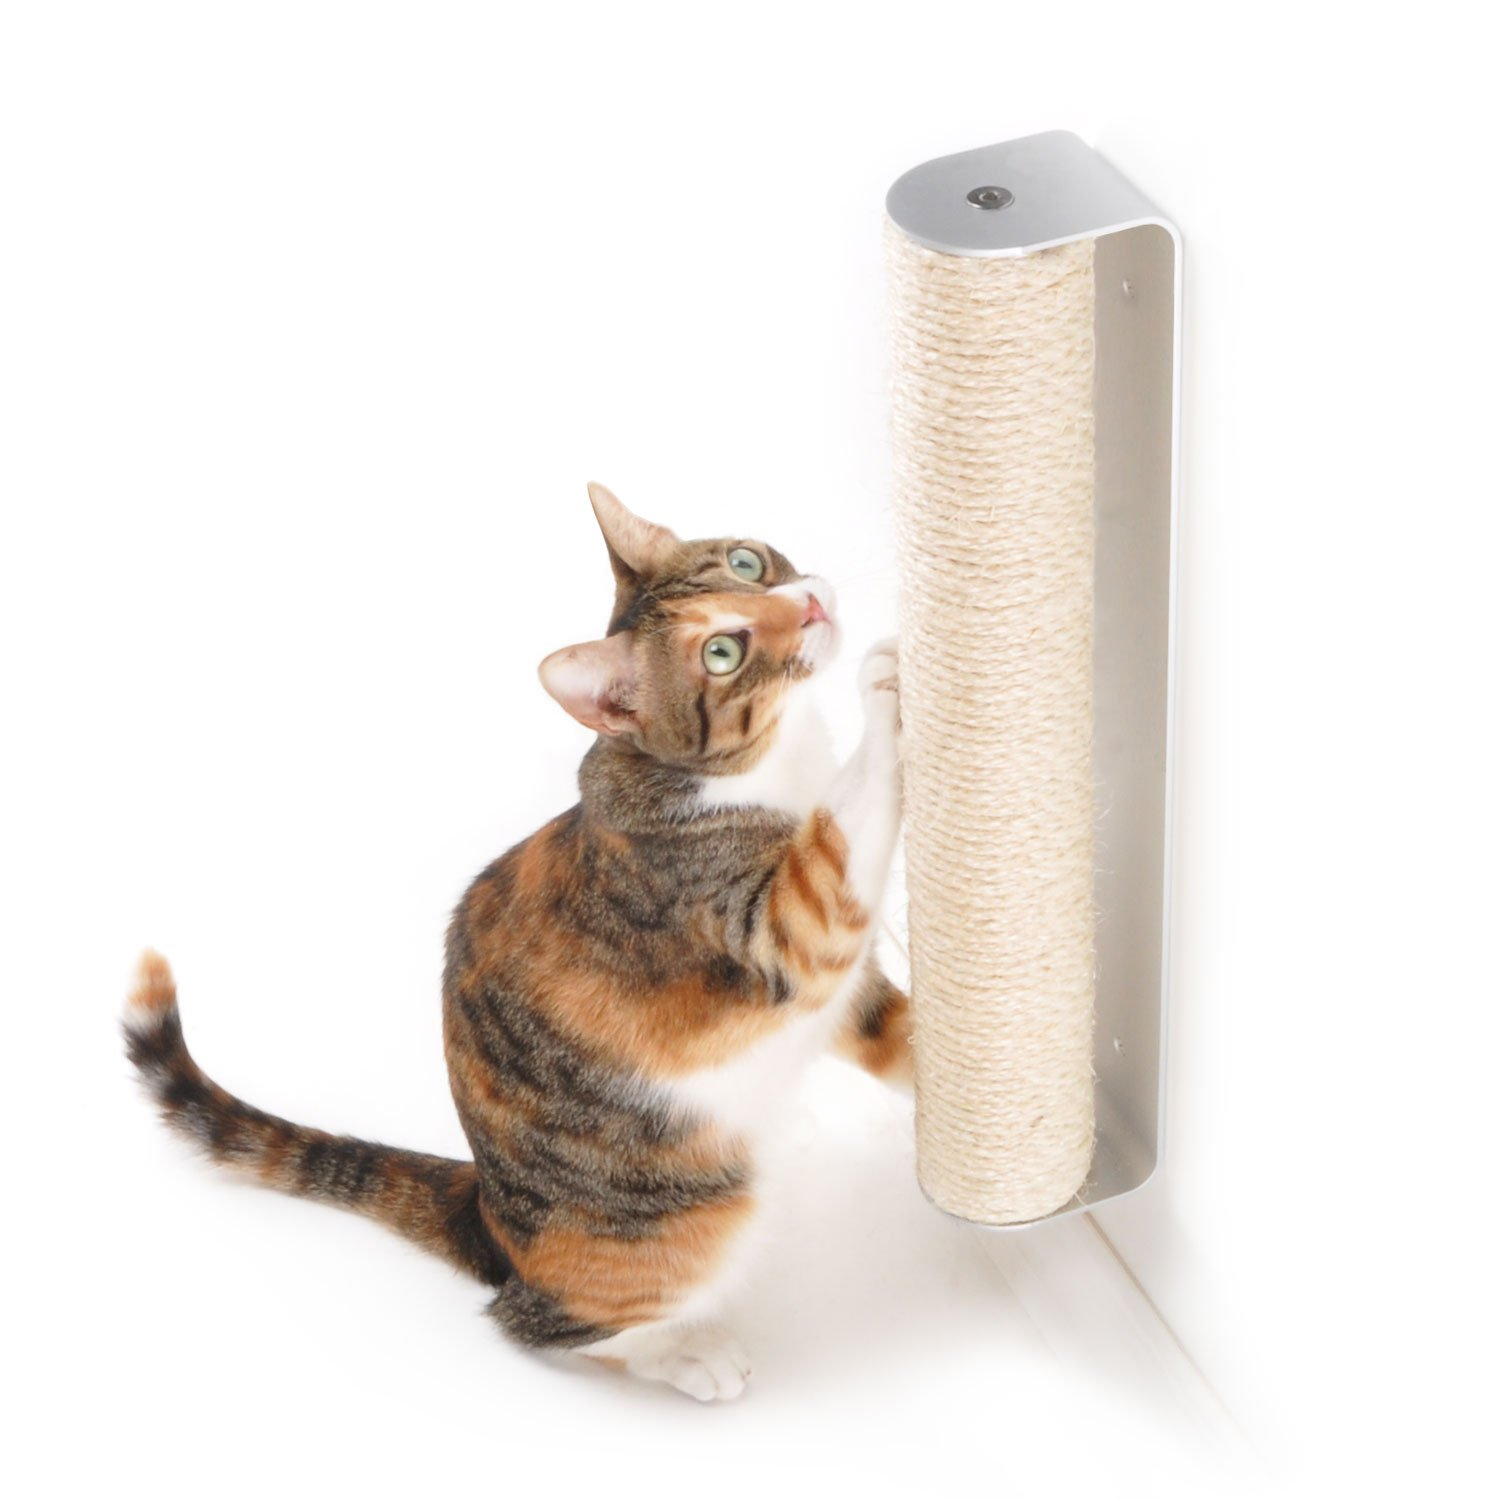 4CLAWS Wall Mounted Sisal Scratching Post by 4CLAWS